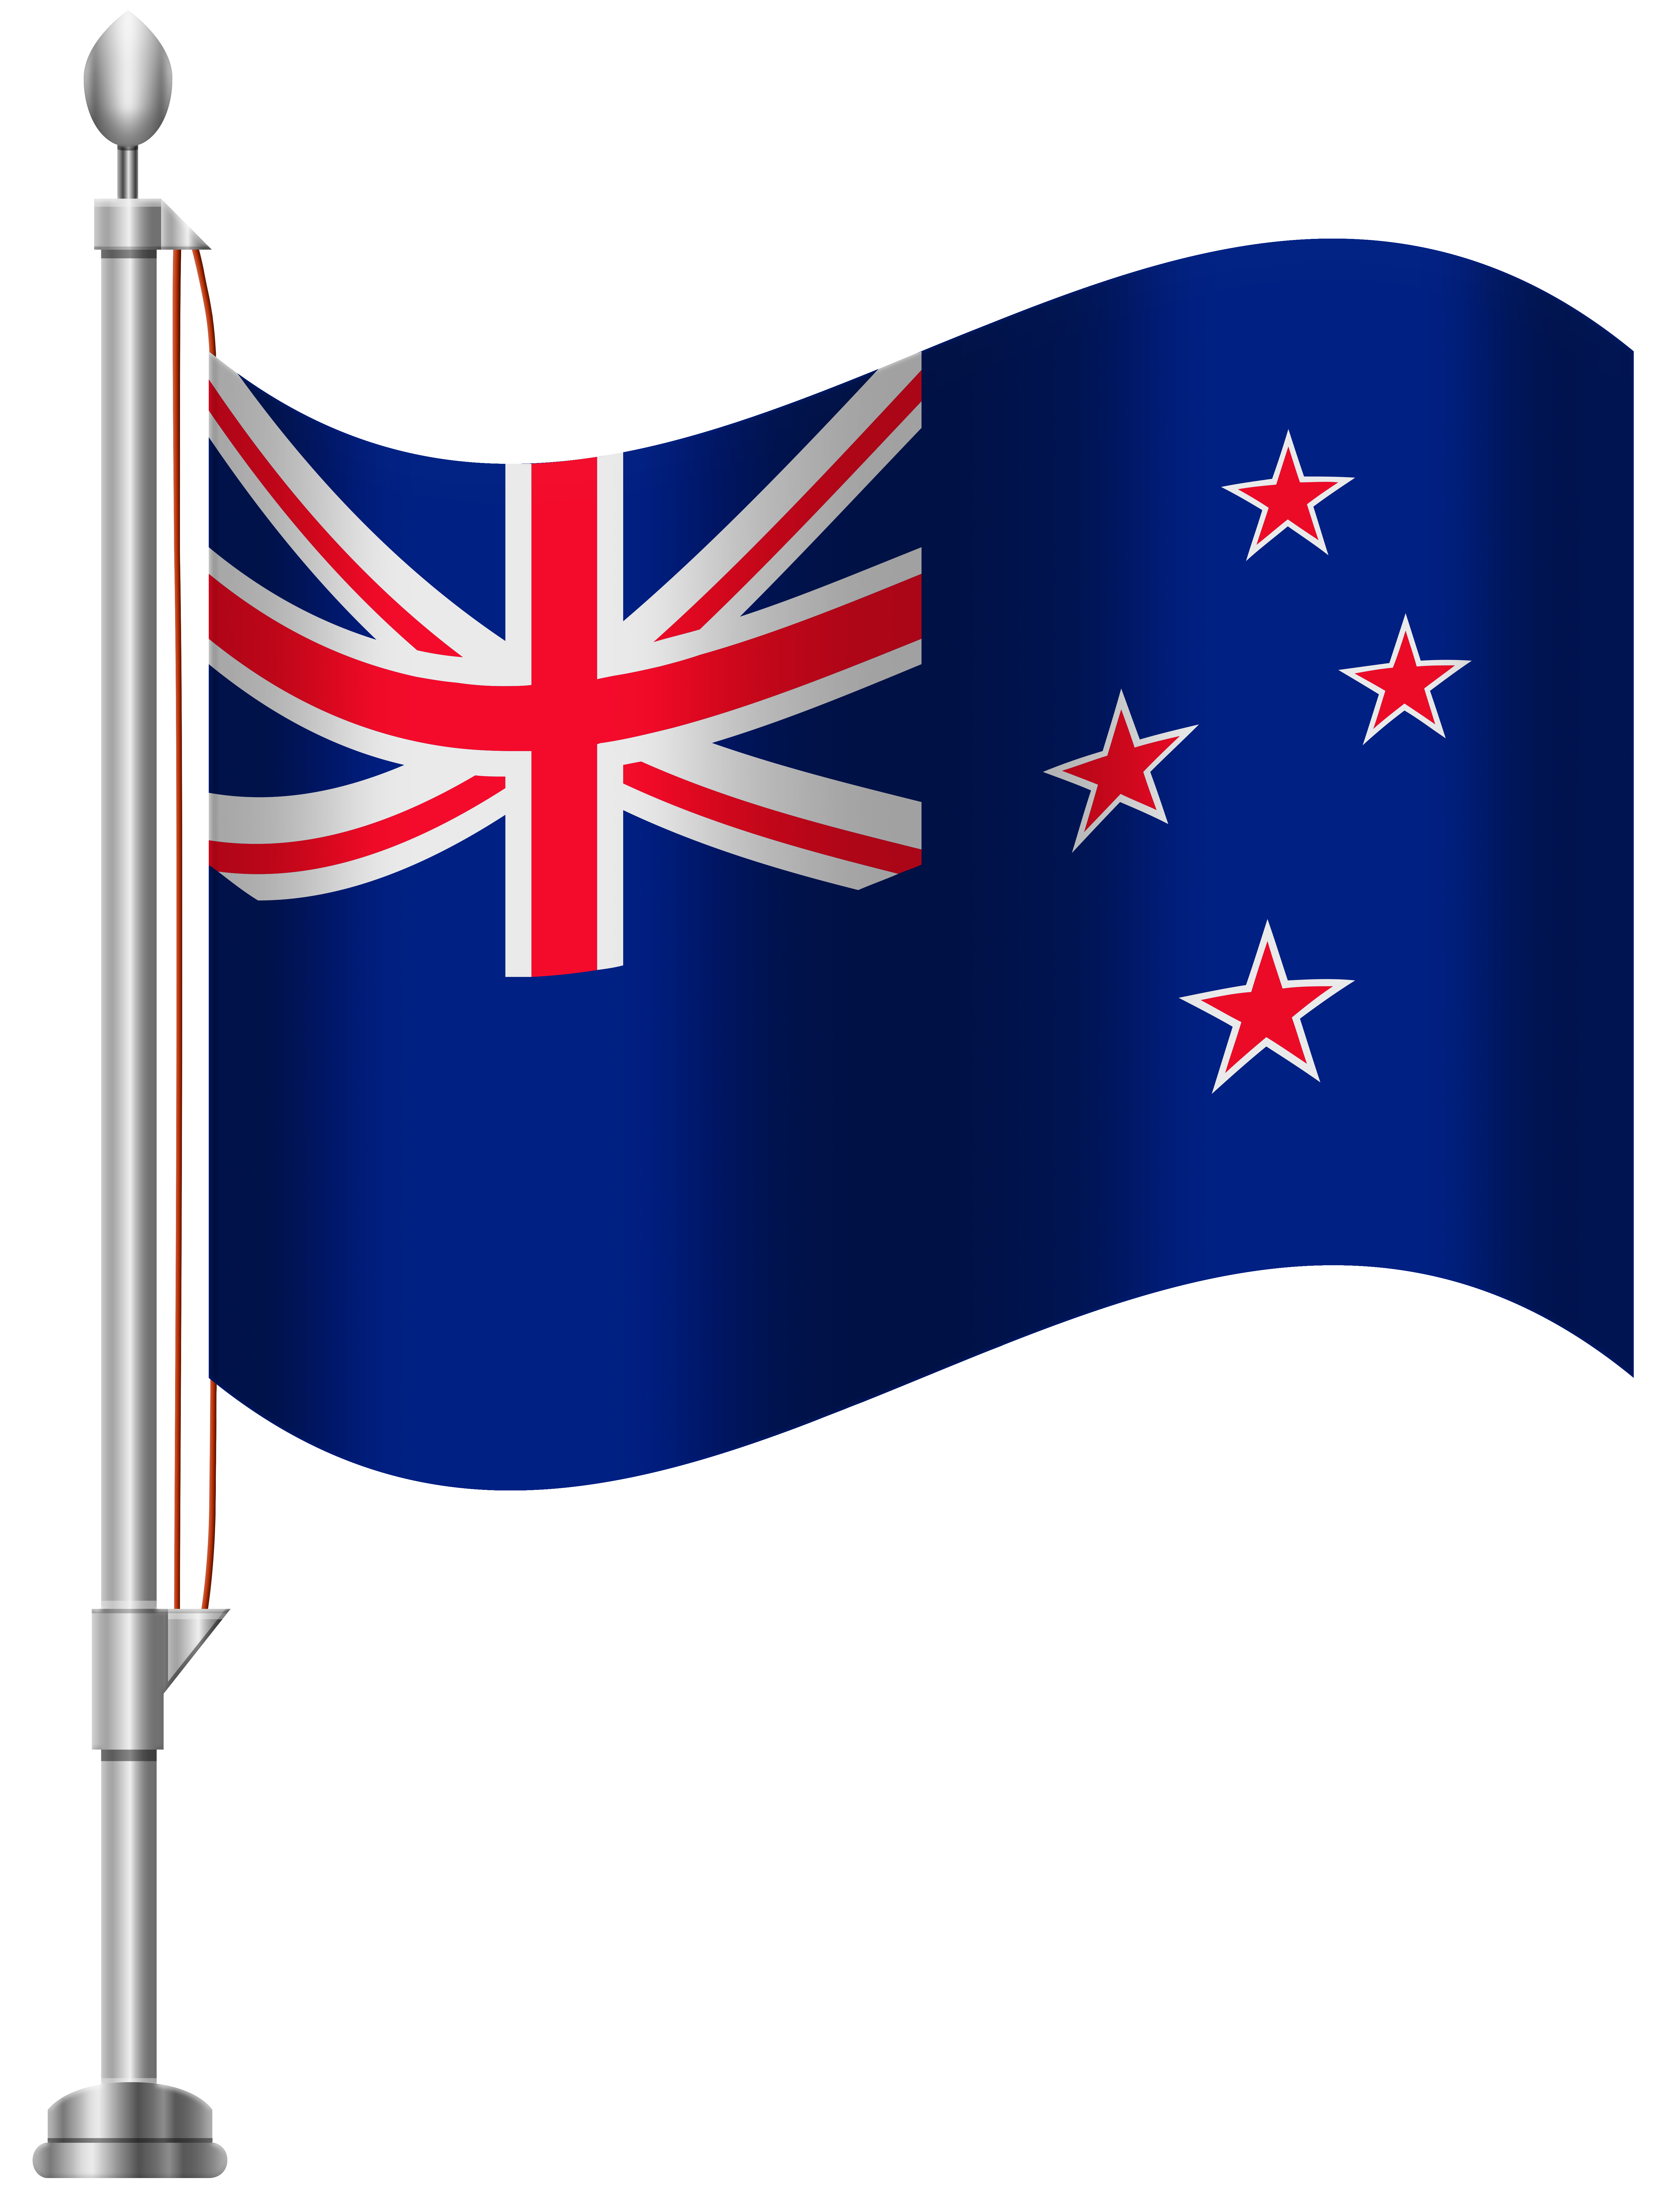 New Zealand clipart #5, Download drawings